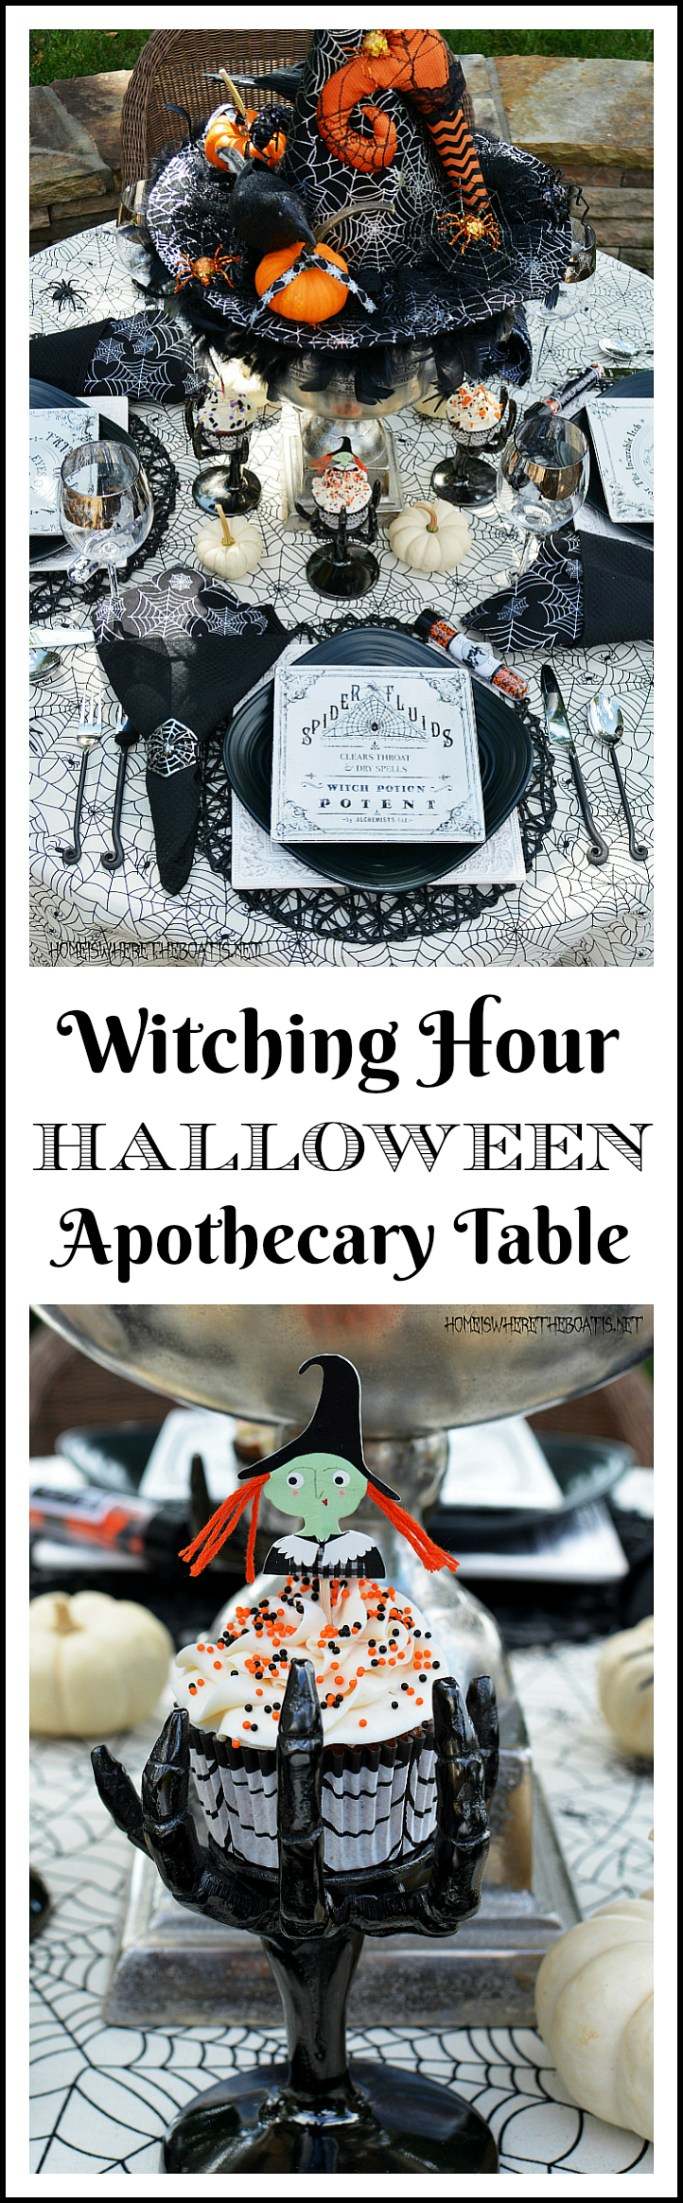 The Witching Hour Halloween Apothecary Table | ©homeiswheretheboatis.net #Halloween #tablescapes